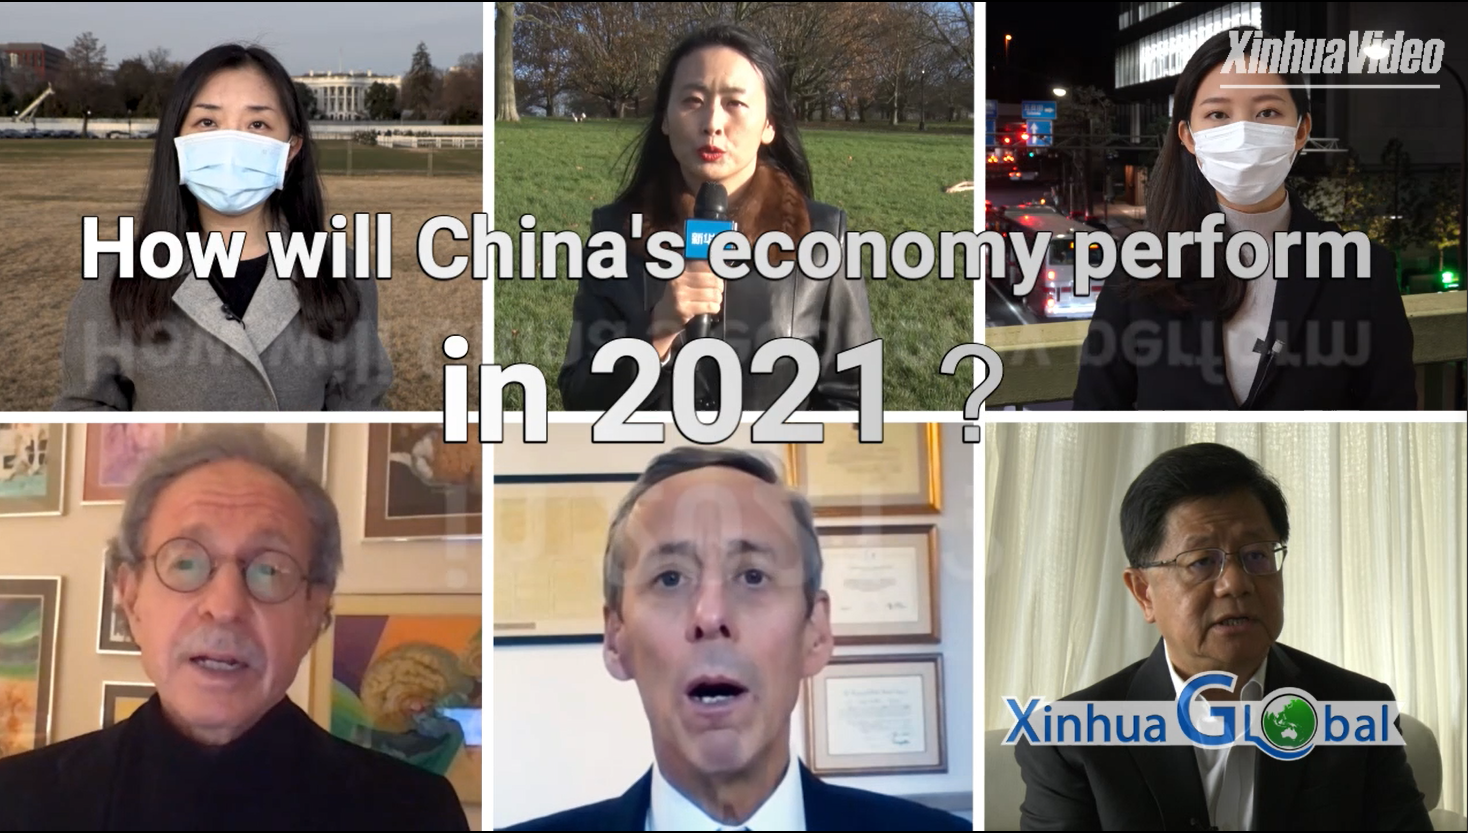 How will China's economy perform in 2021?